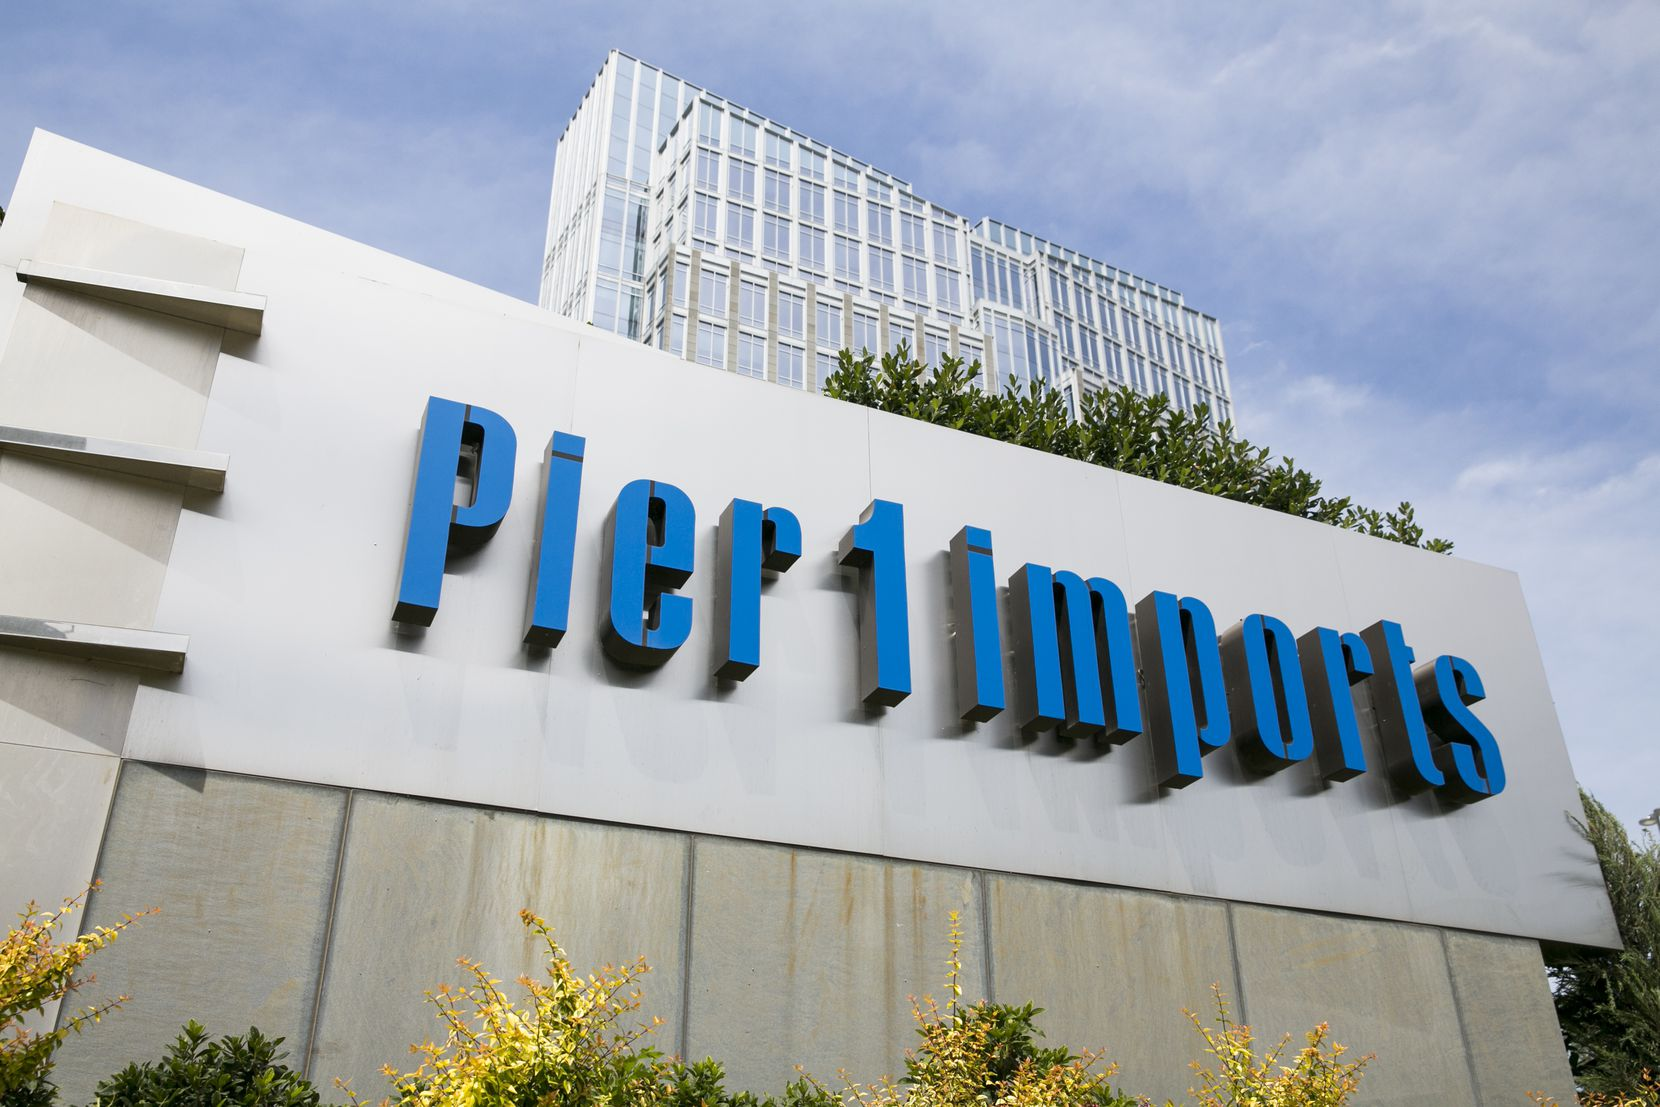 A logo sign outside of the headquarters of Pier 1 Imports Inc., in Fort Worth, Texas, on May 29, 2017.